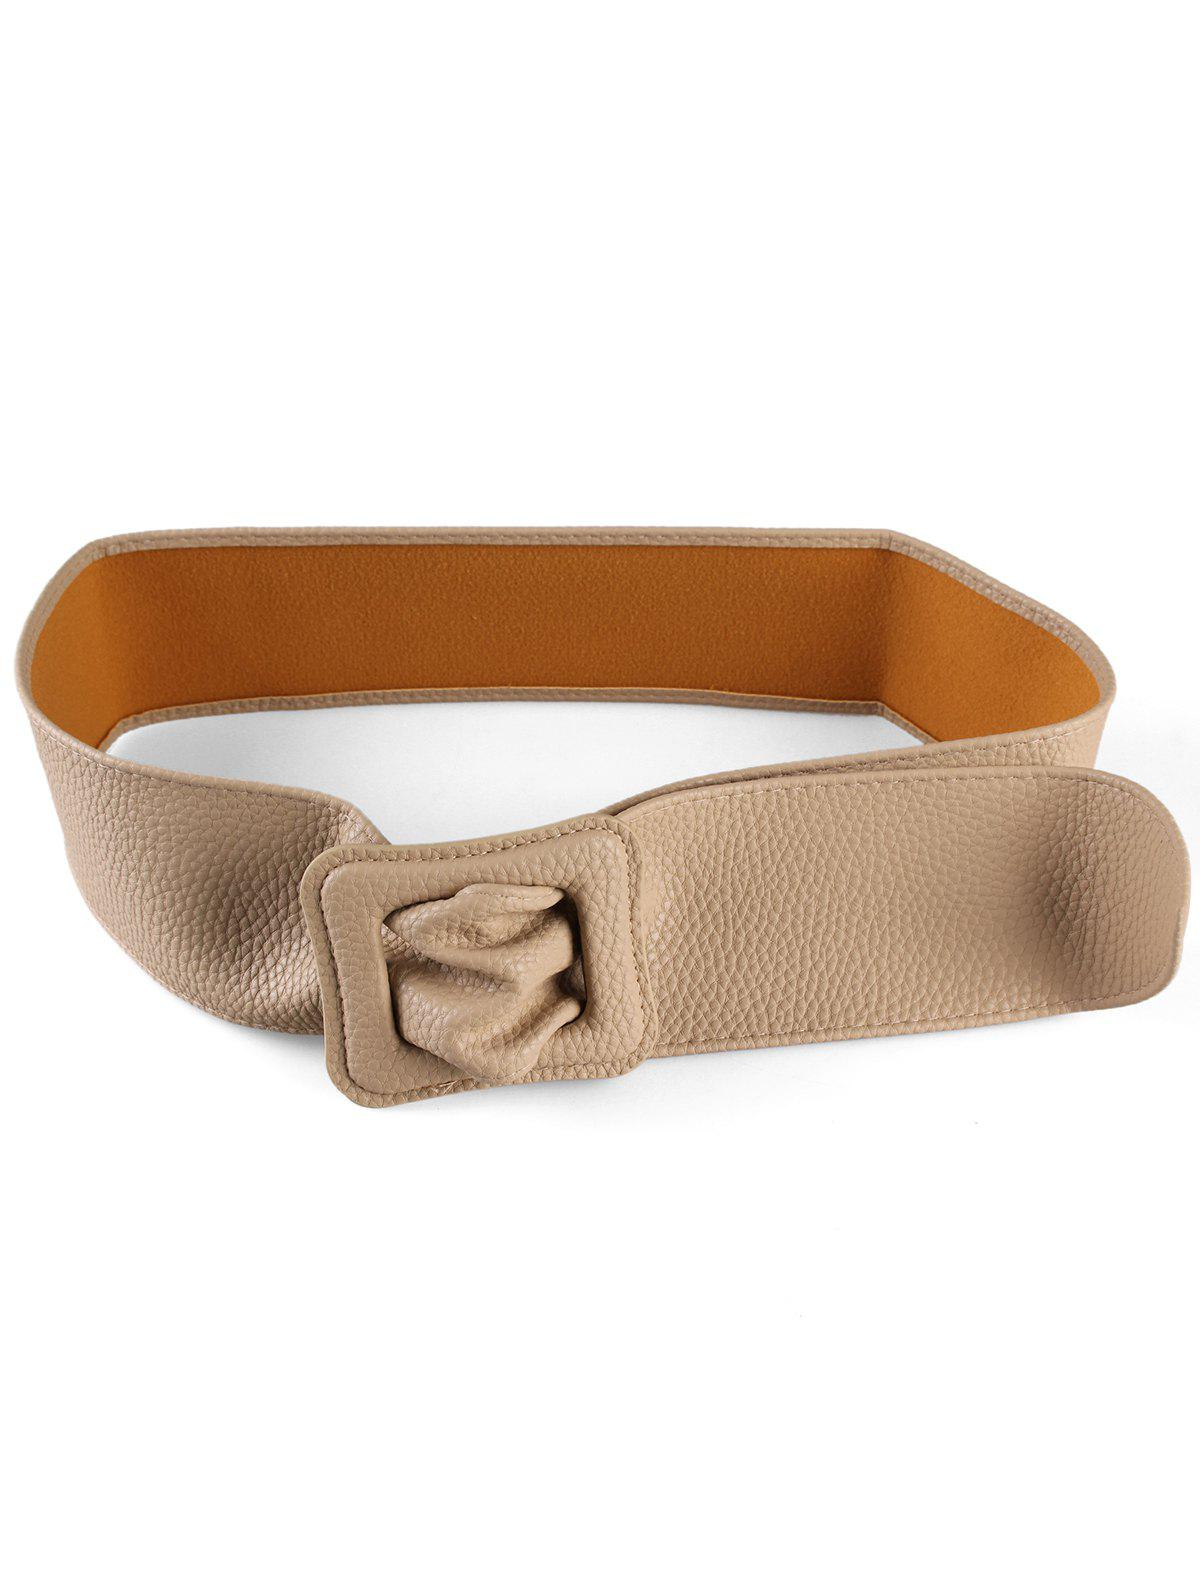 New PU Leather Square Buckle Wide Belt